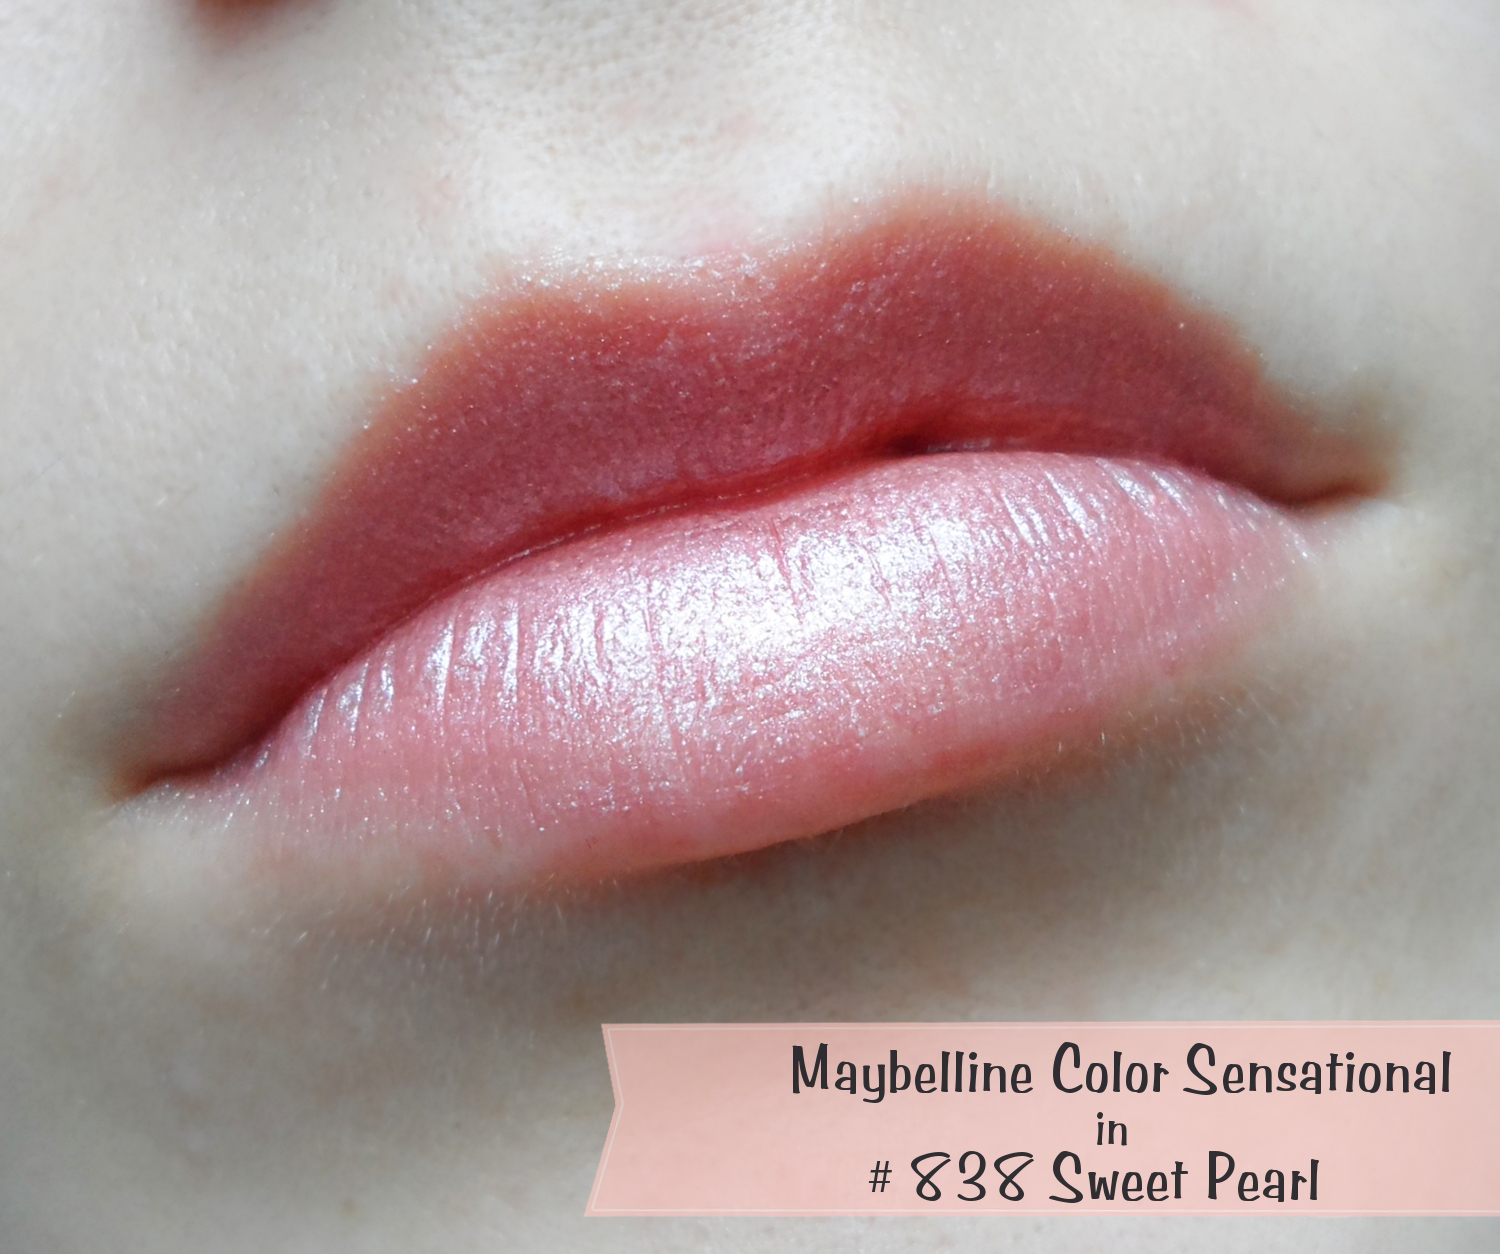 Maybelline lipstick reviewMaybelline Color Sensational lipstick review swatches, Maybelline Color Sensational Pearl, Maybelline lipstick review liz breygel january girl